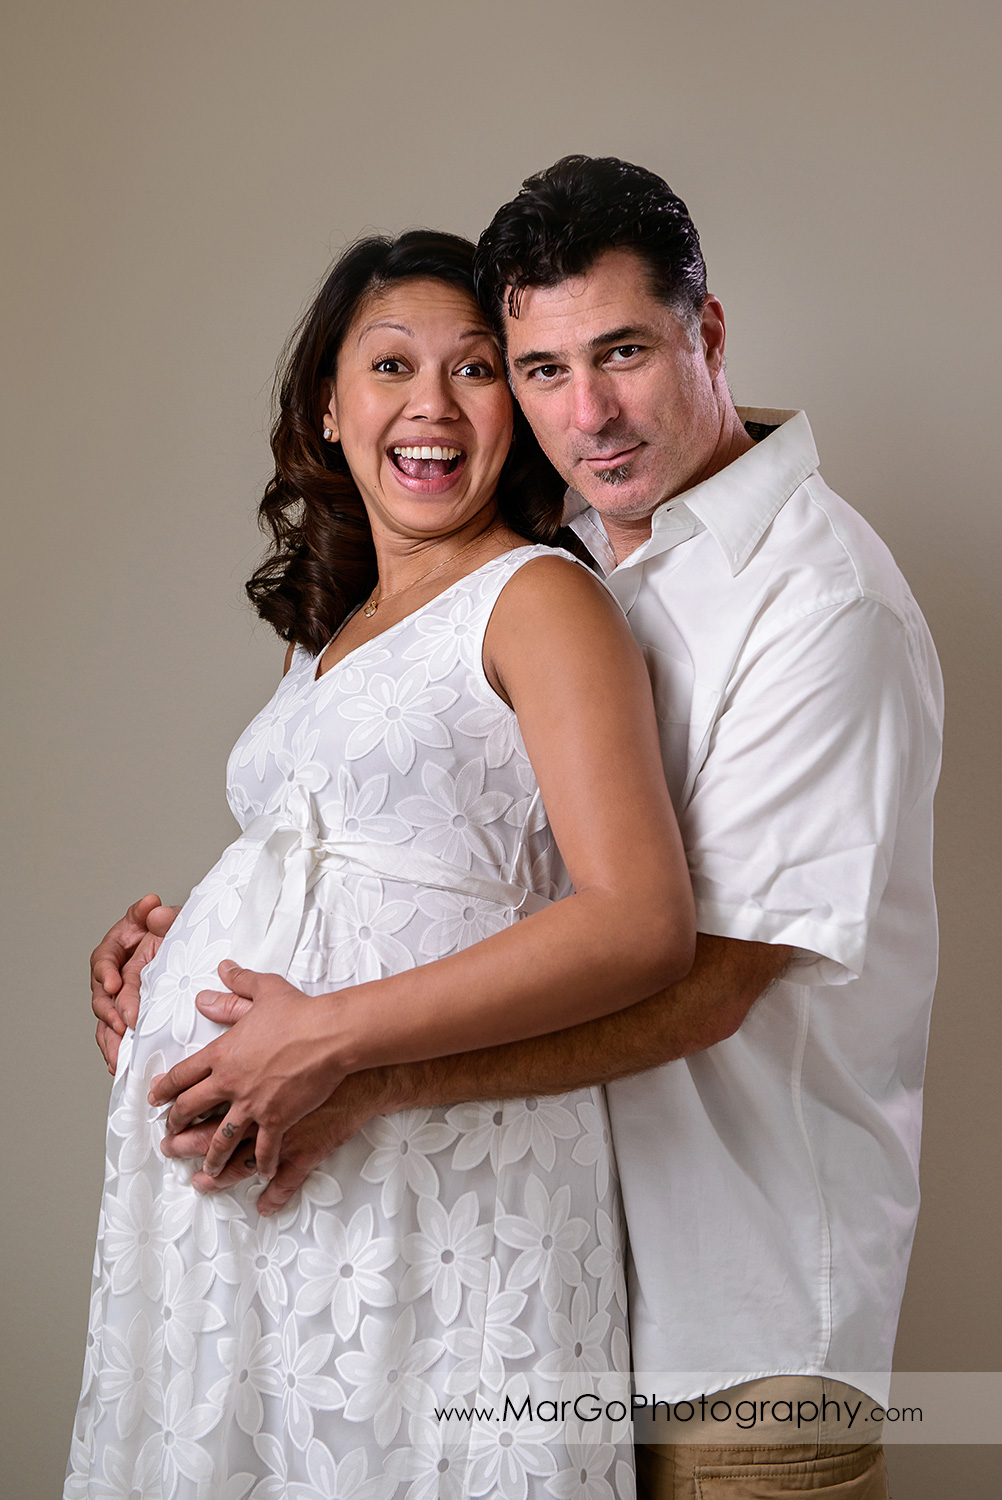 portrait of pregnant woman in white dress and man in white shirt smiling into camera during maternity session